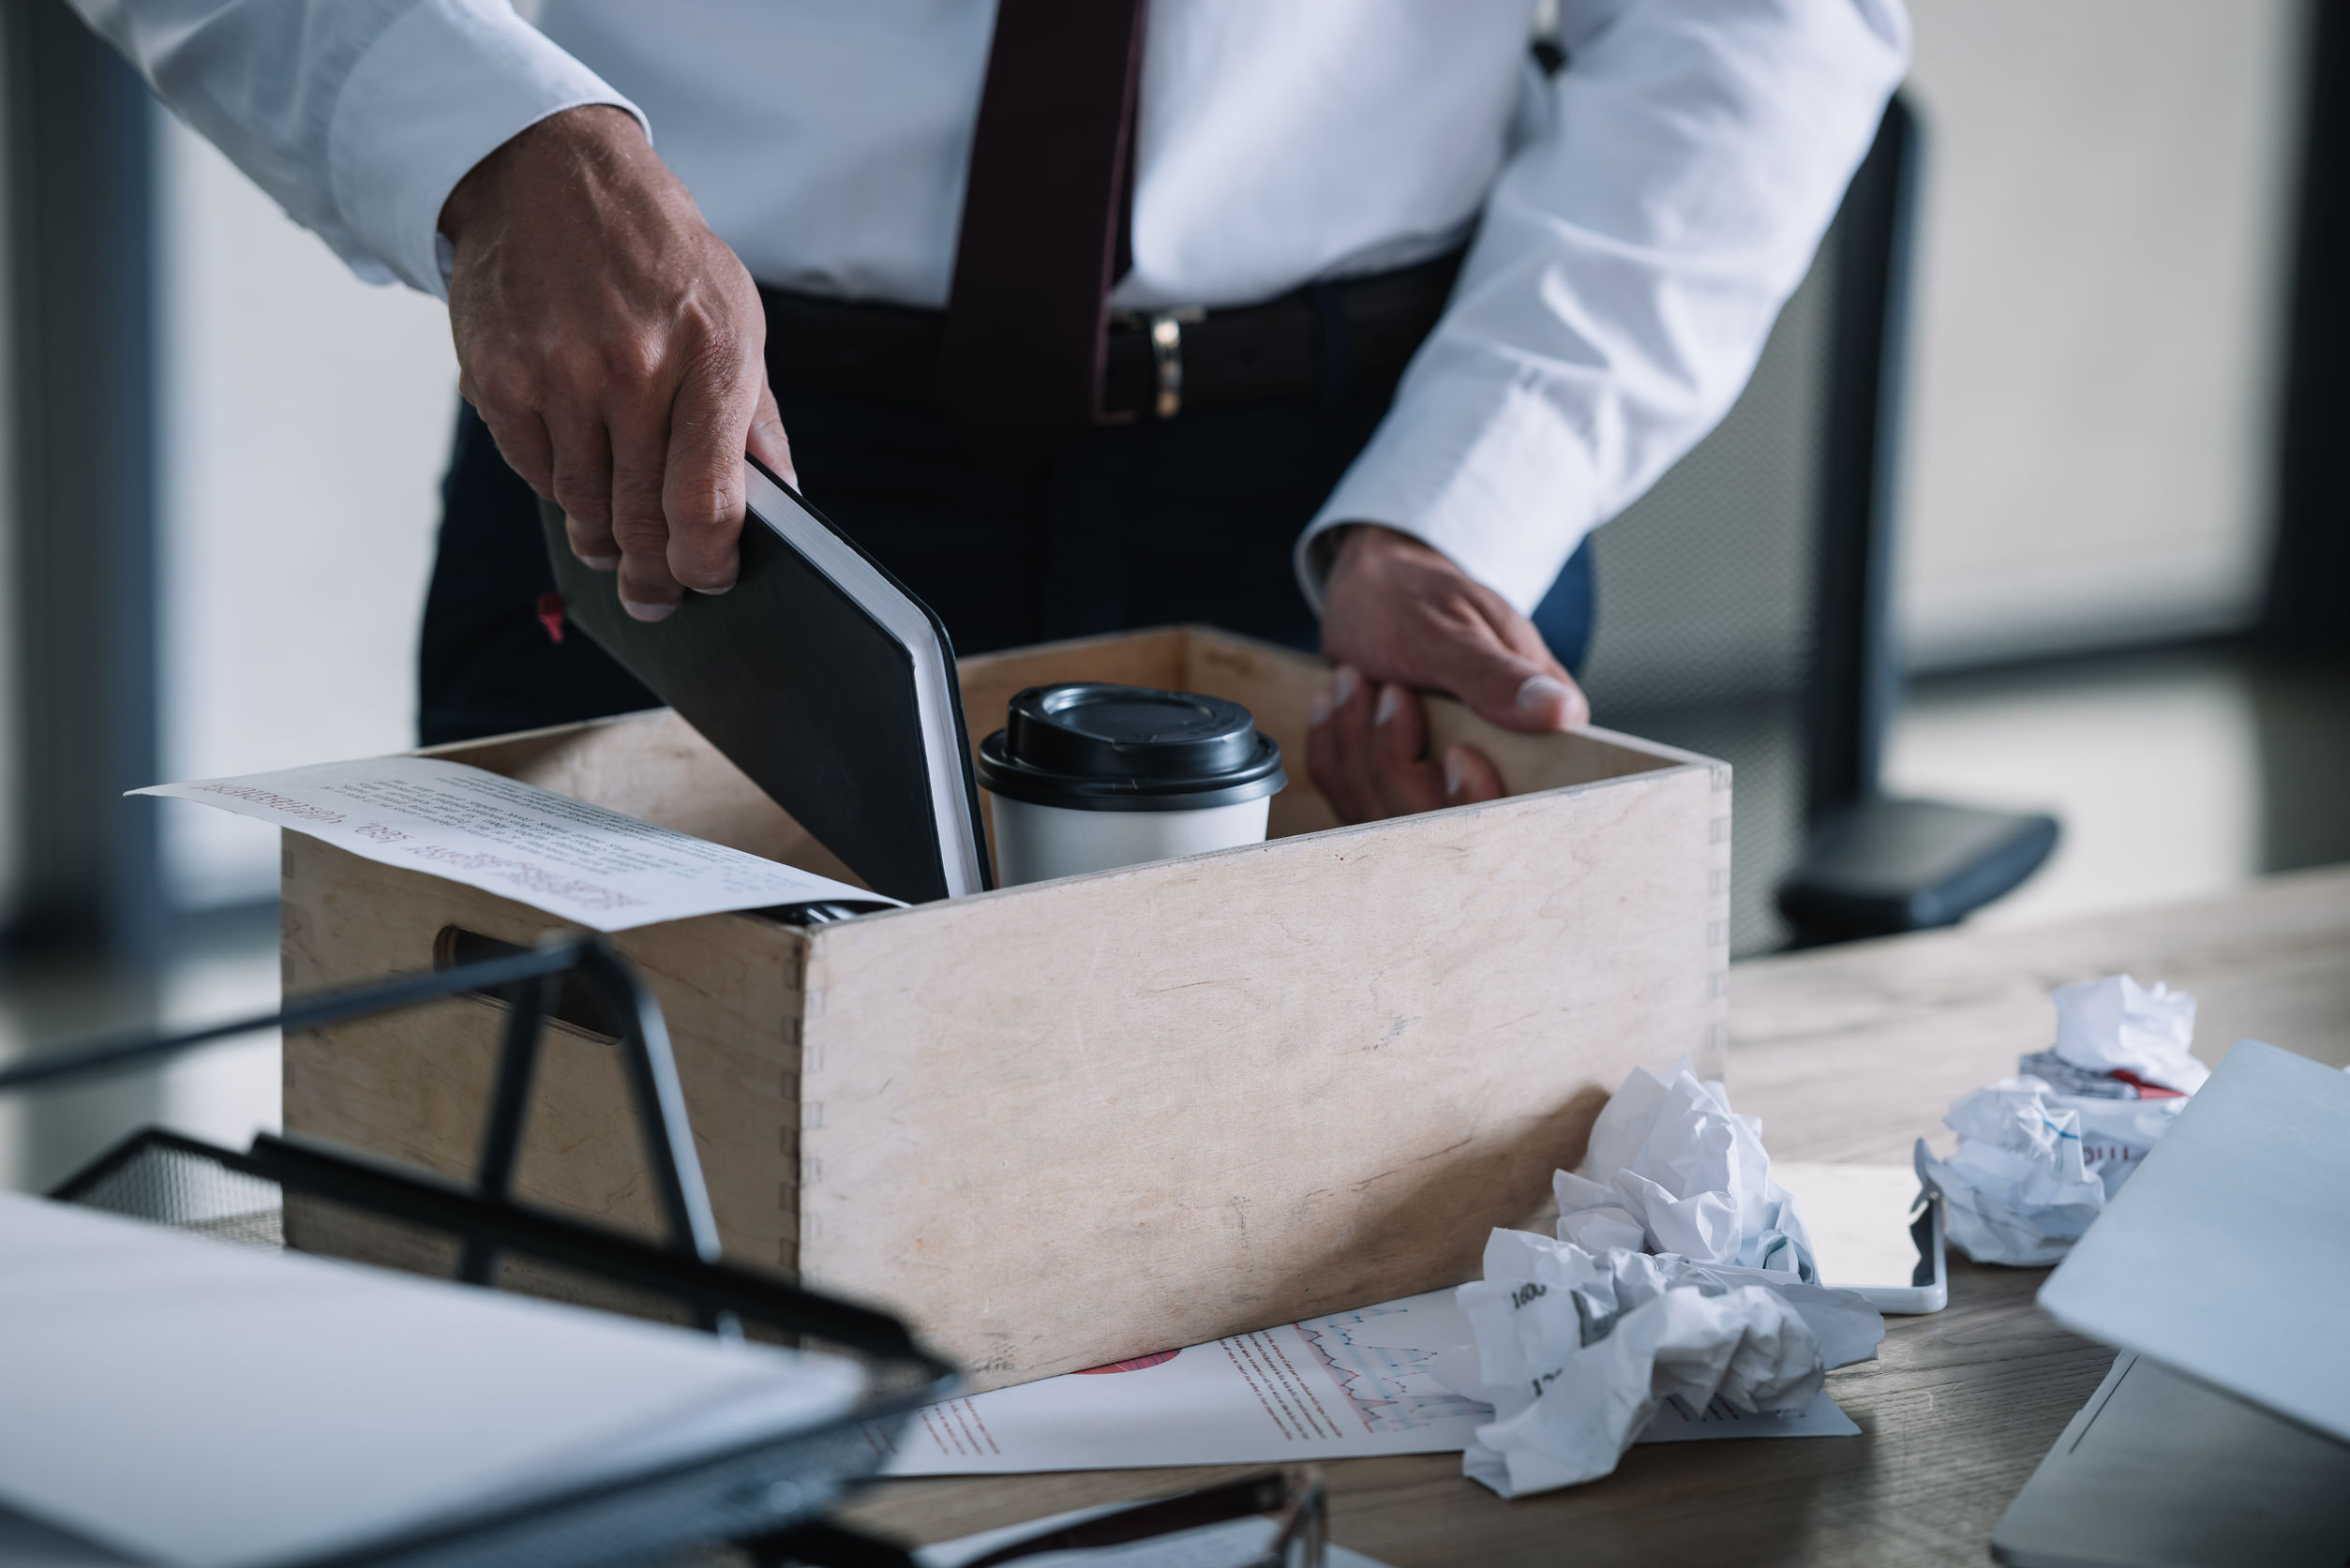 cropped view of man putting notebook in wooden box near paper cup and crumpled paper balls on table